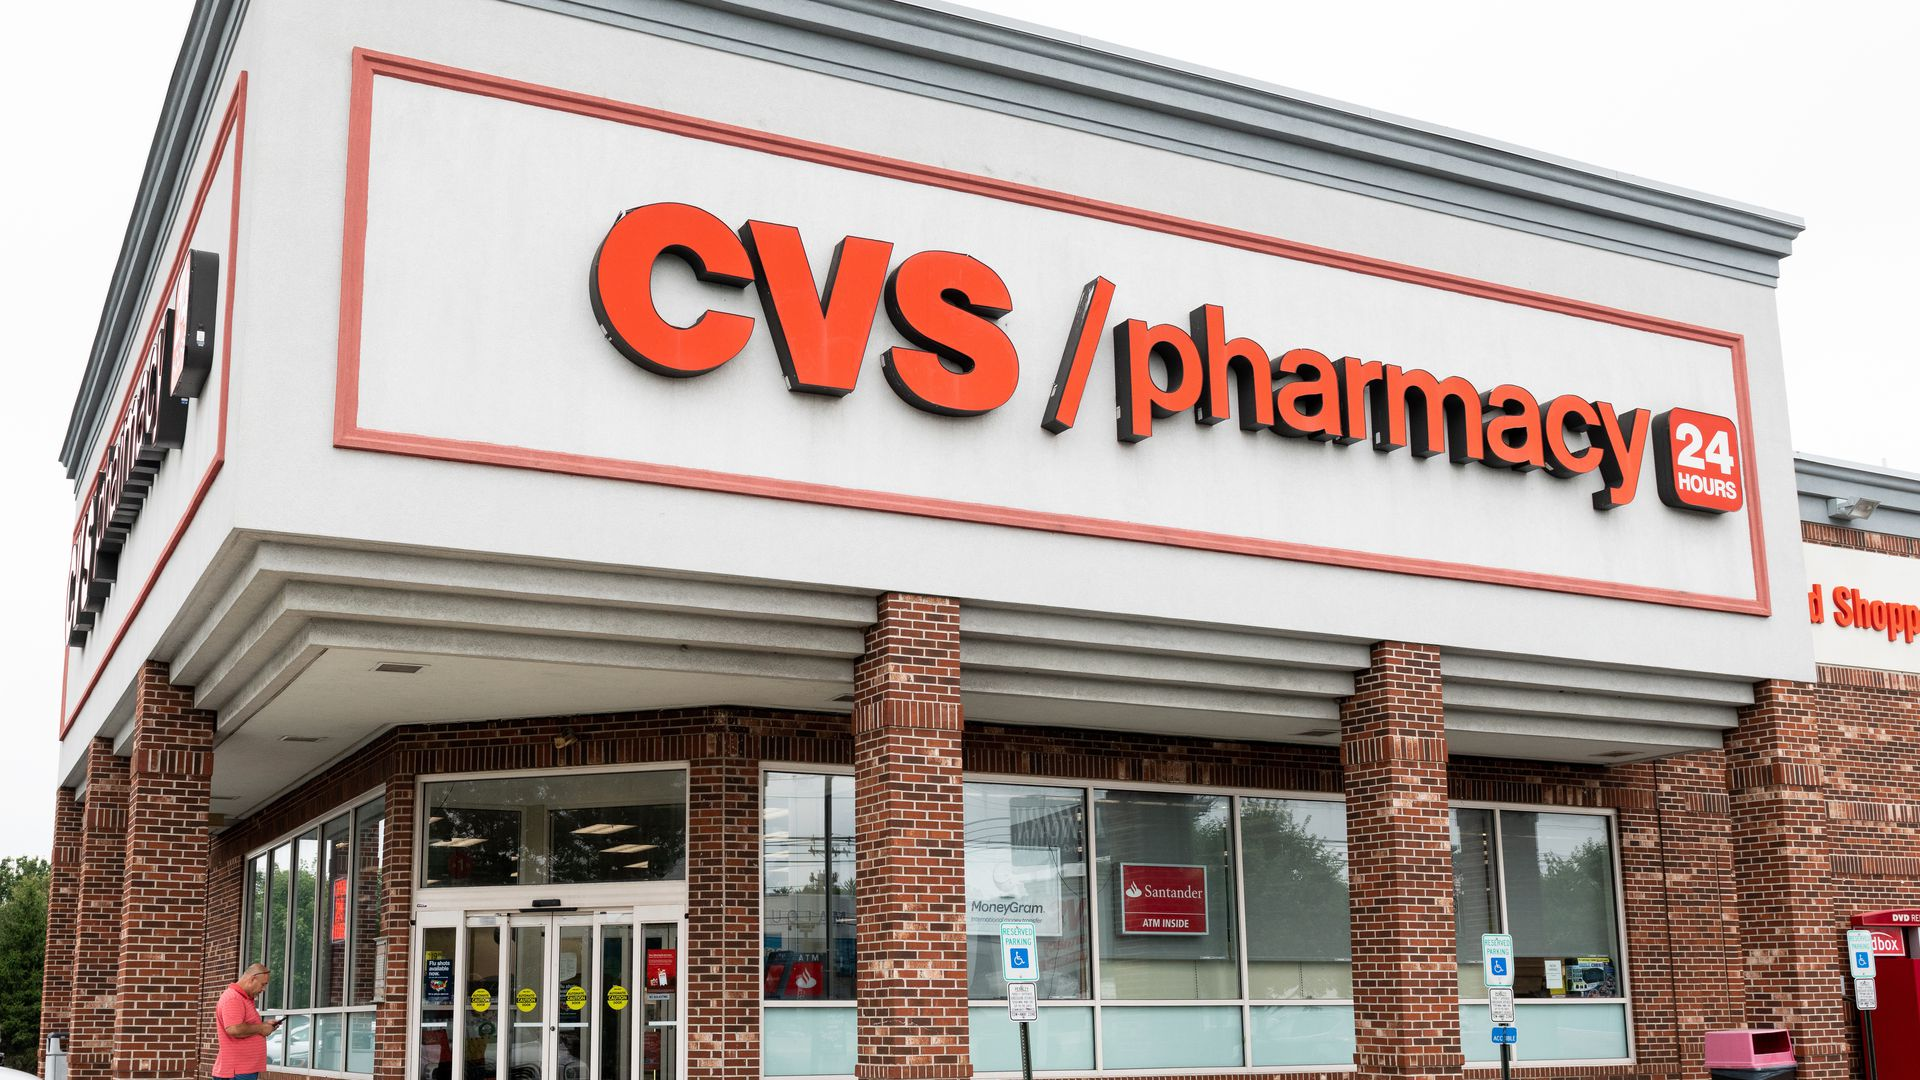 A CVS pharmacy.